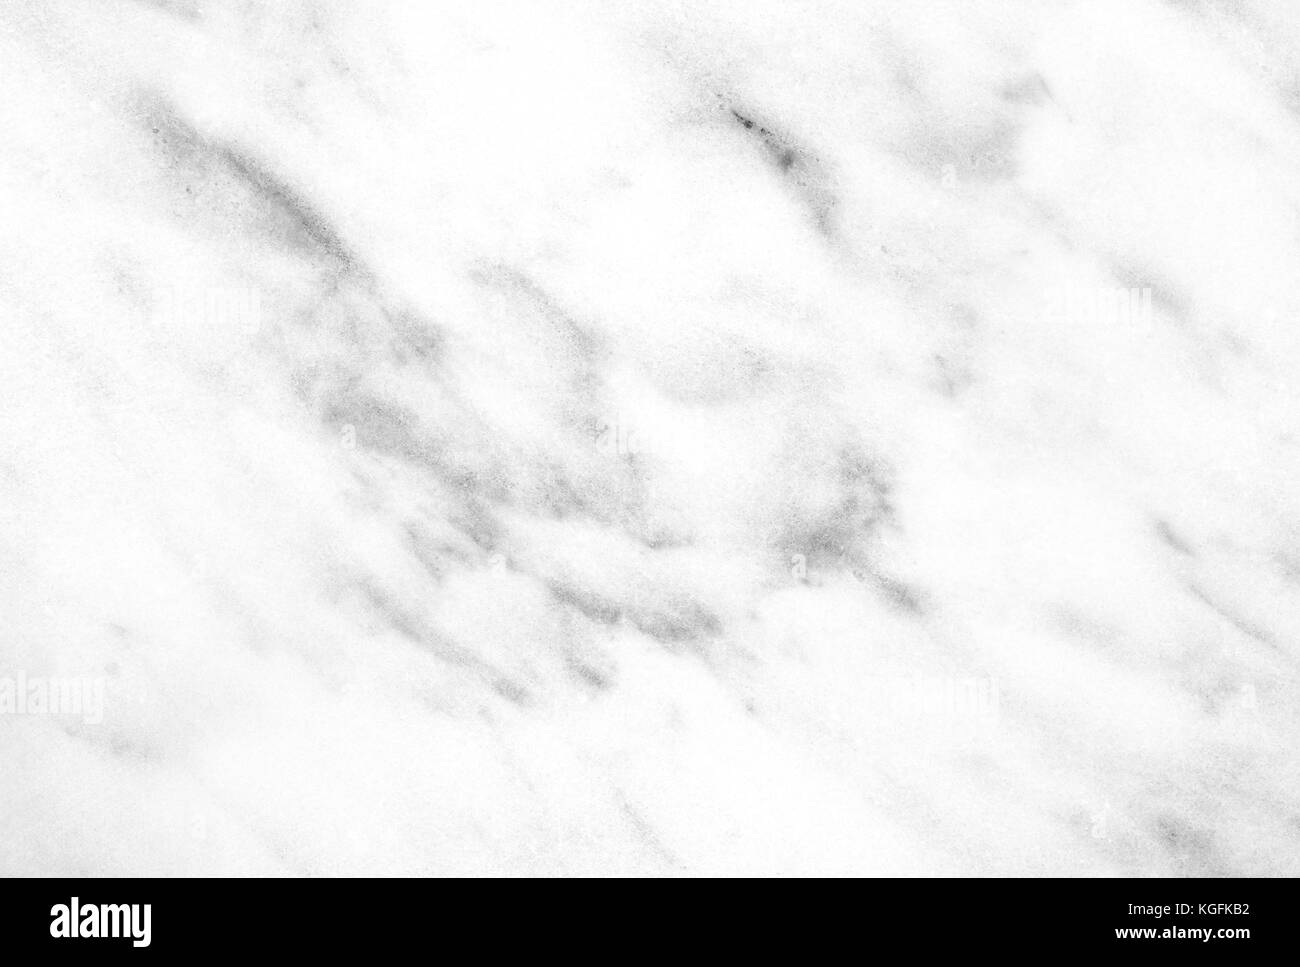 White marble countertops texture Bright White White Carrara Marble Natural Light For Bathroom Or Kitchen White Countertop High Resolution Texture And Pattern Crazychappyinfo White Carrara Marble Natural Light For Bathroom Or Kitchen White